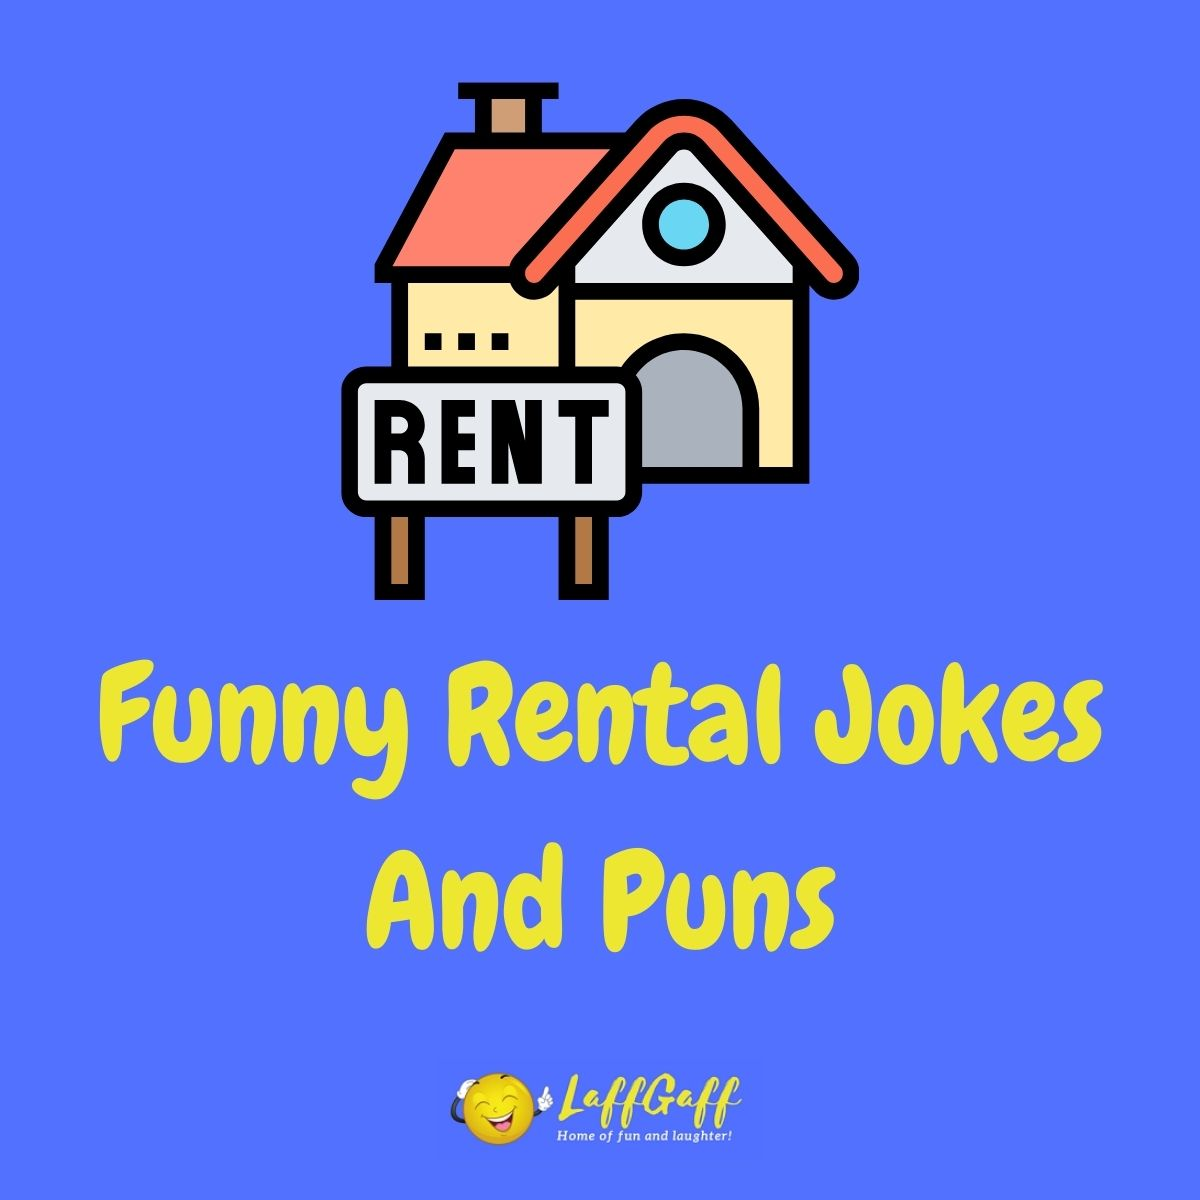 Featured image for a page of funny rental jokes and puns.